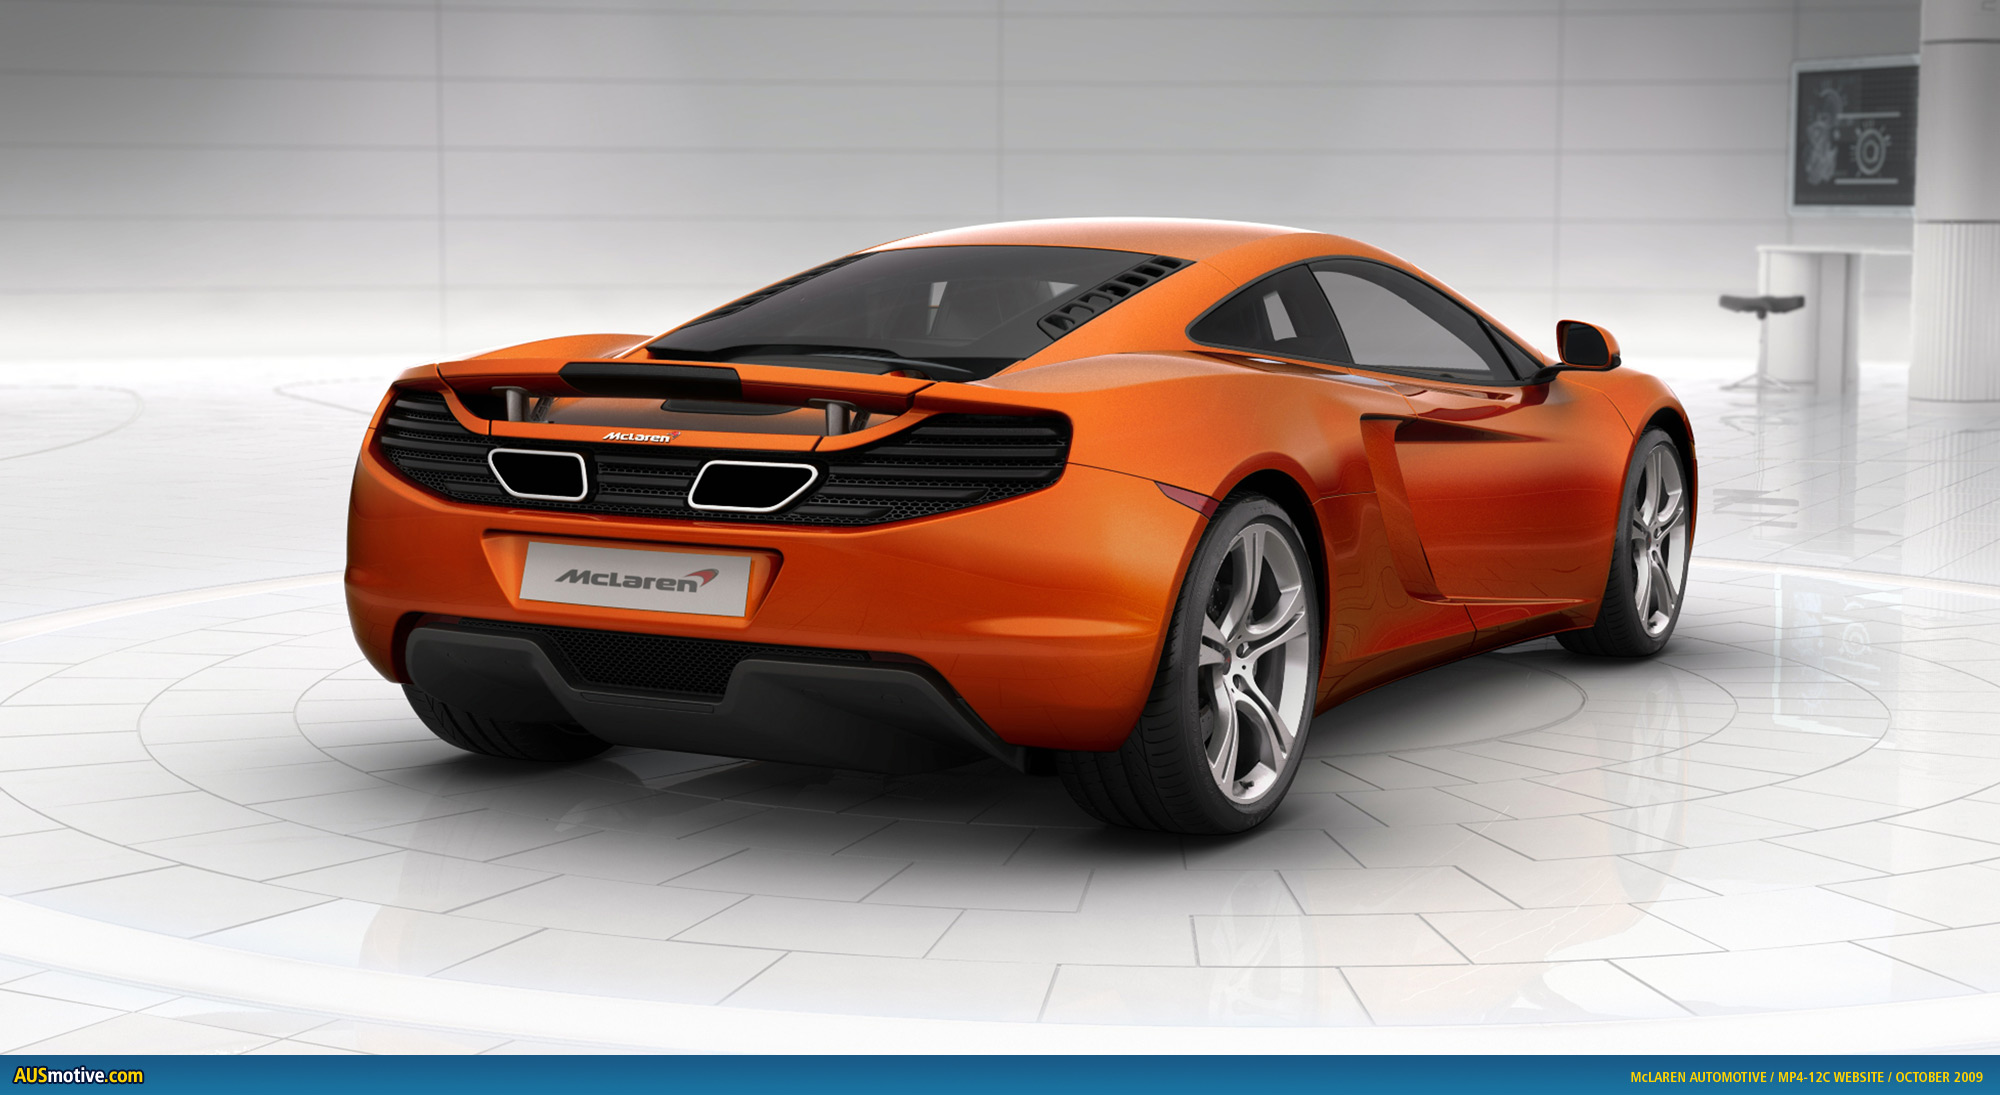 mclaren mp4 12c website. Black Bedroom Furniture Sets. Home Design Ideas